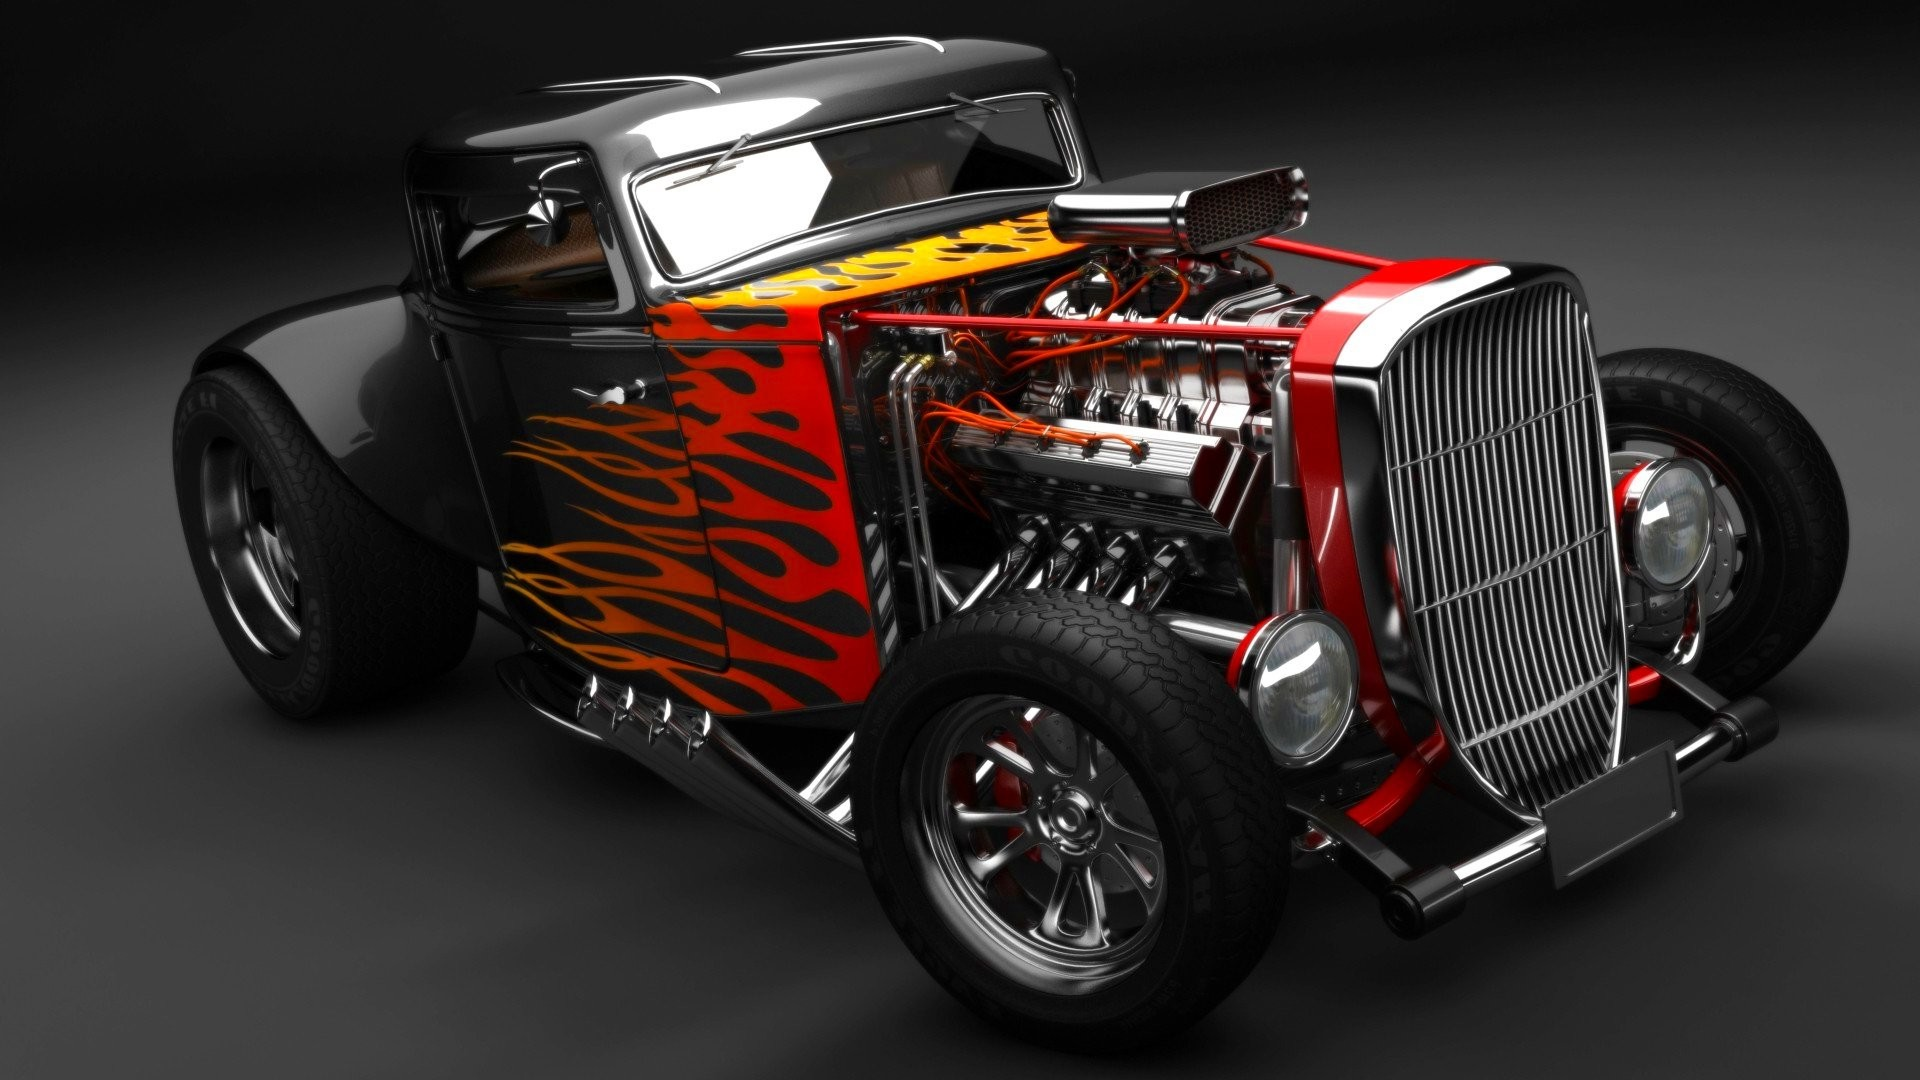 Hot Rod Wallpapers 183 ①